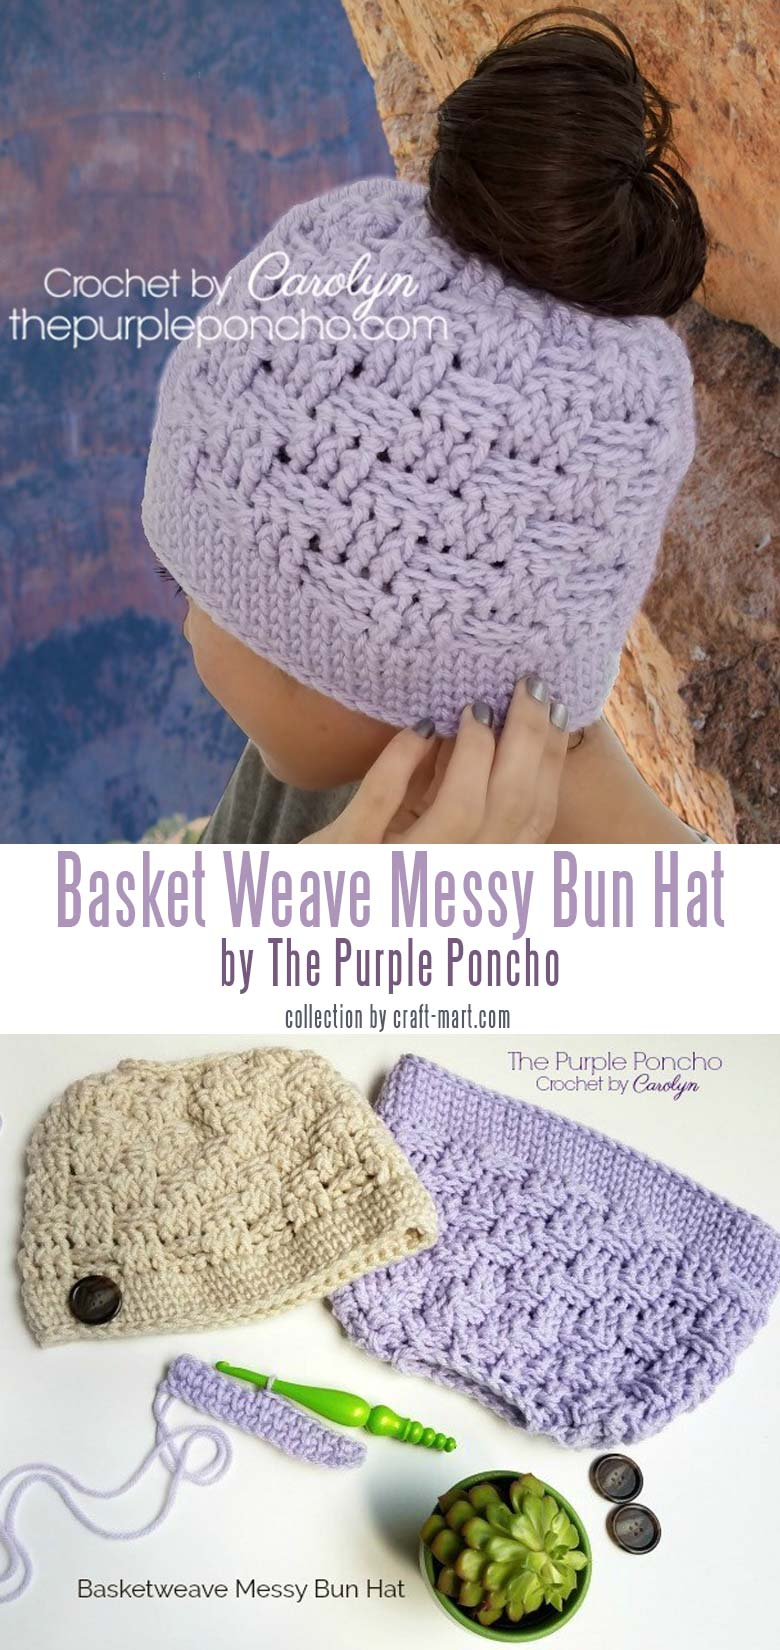 crochet hat patterns for beginners - Basketweave Messy Bun Hat – Free Crochet Pattern by The Purple Poncho